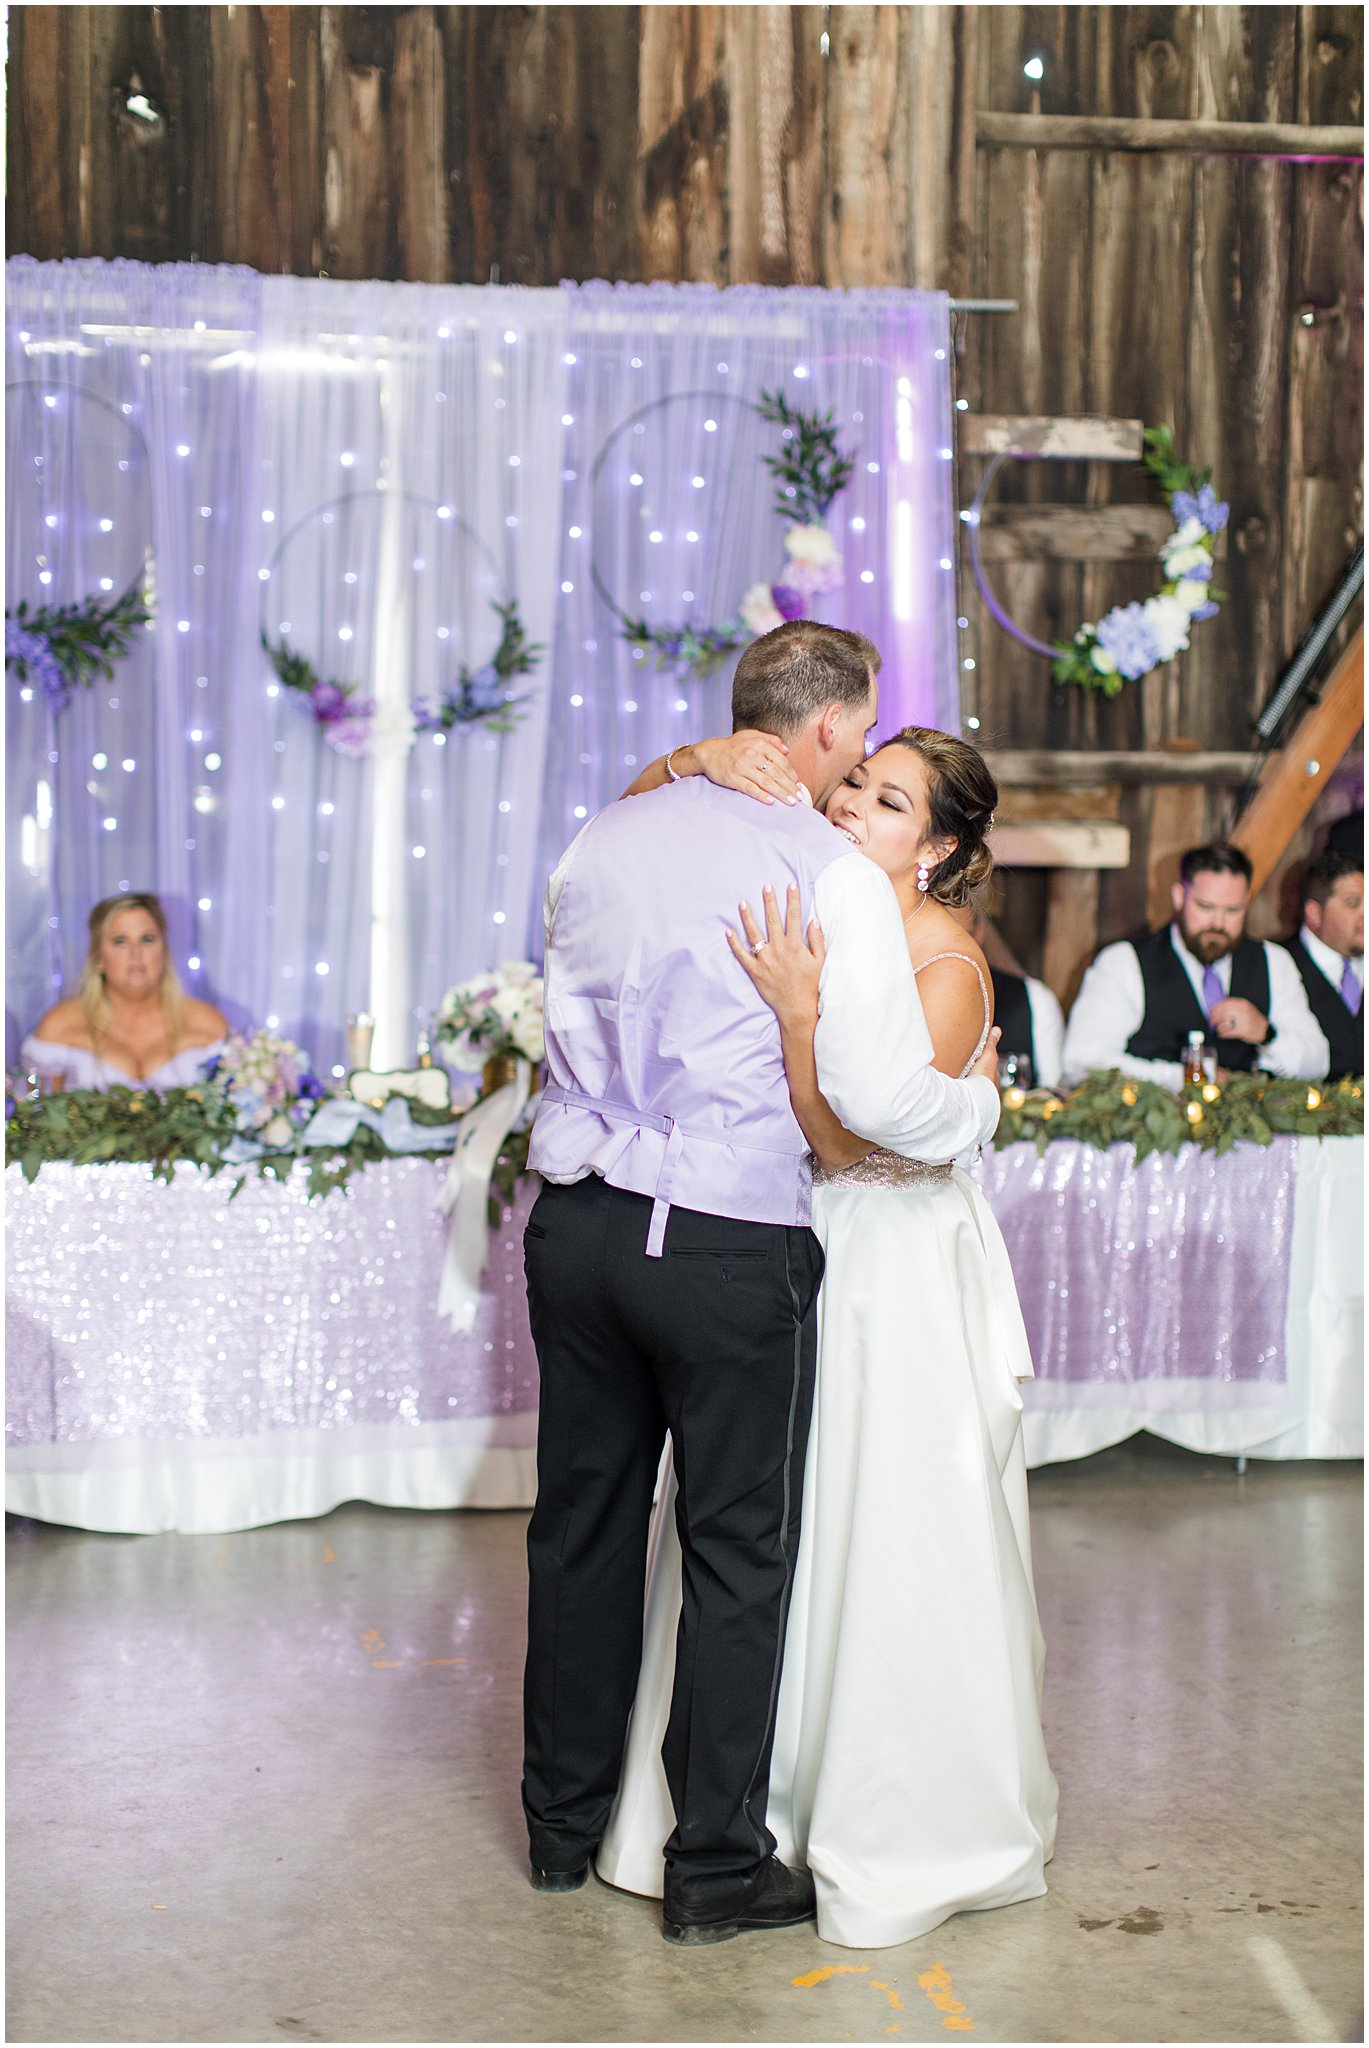 2019 wedding san juan bautista hacienda de leal vineyards bay area wedding photographer_0069.jpg